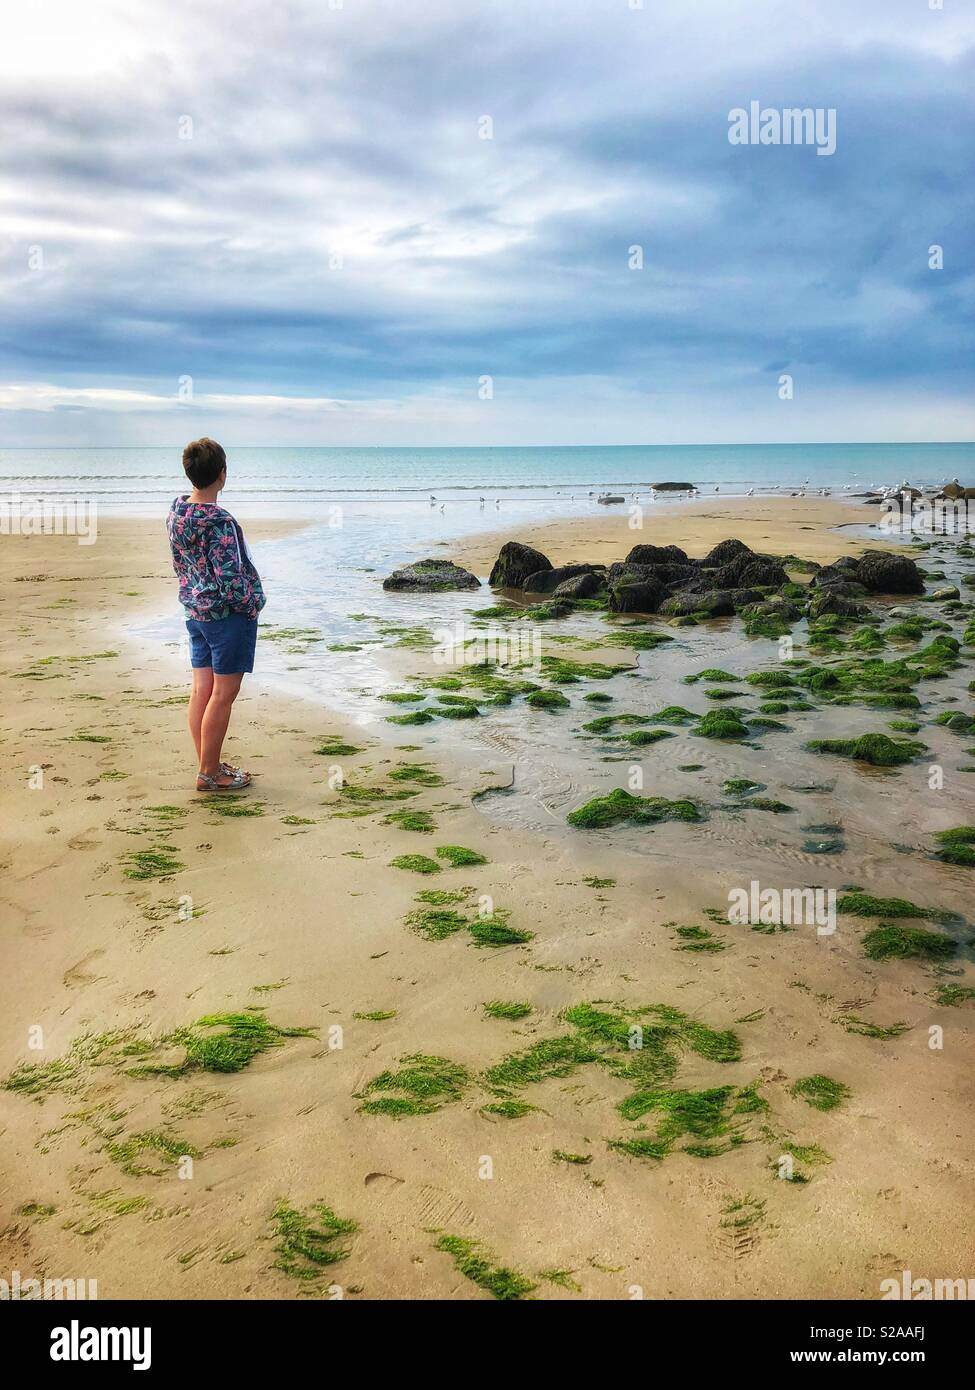 Middle aged woman looking out towards the horizon across a beach and the sea. - Stock Image